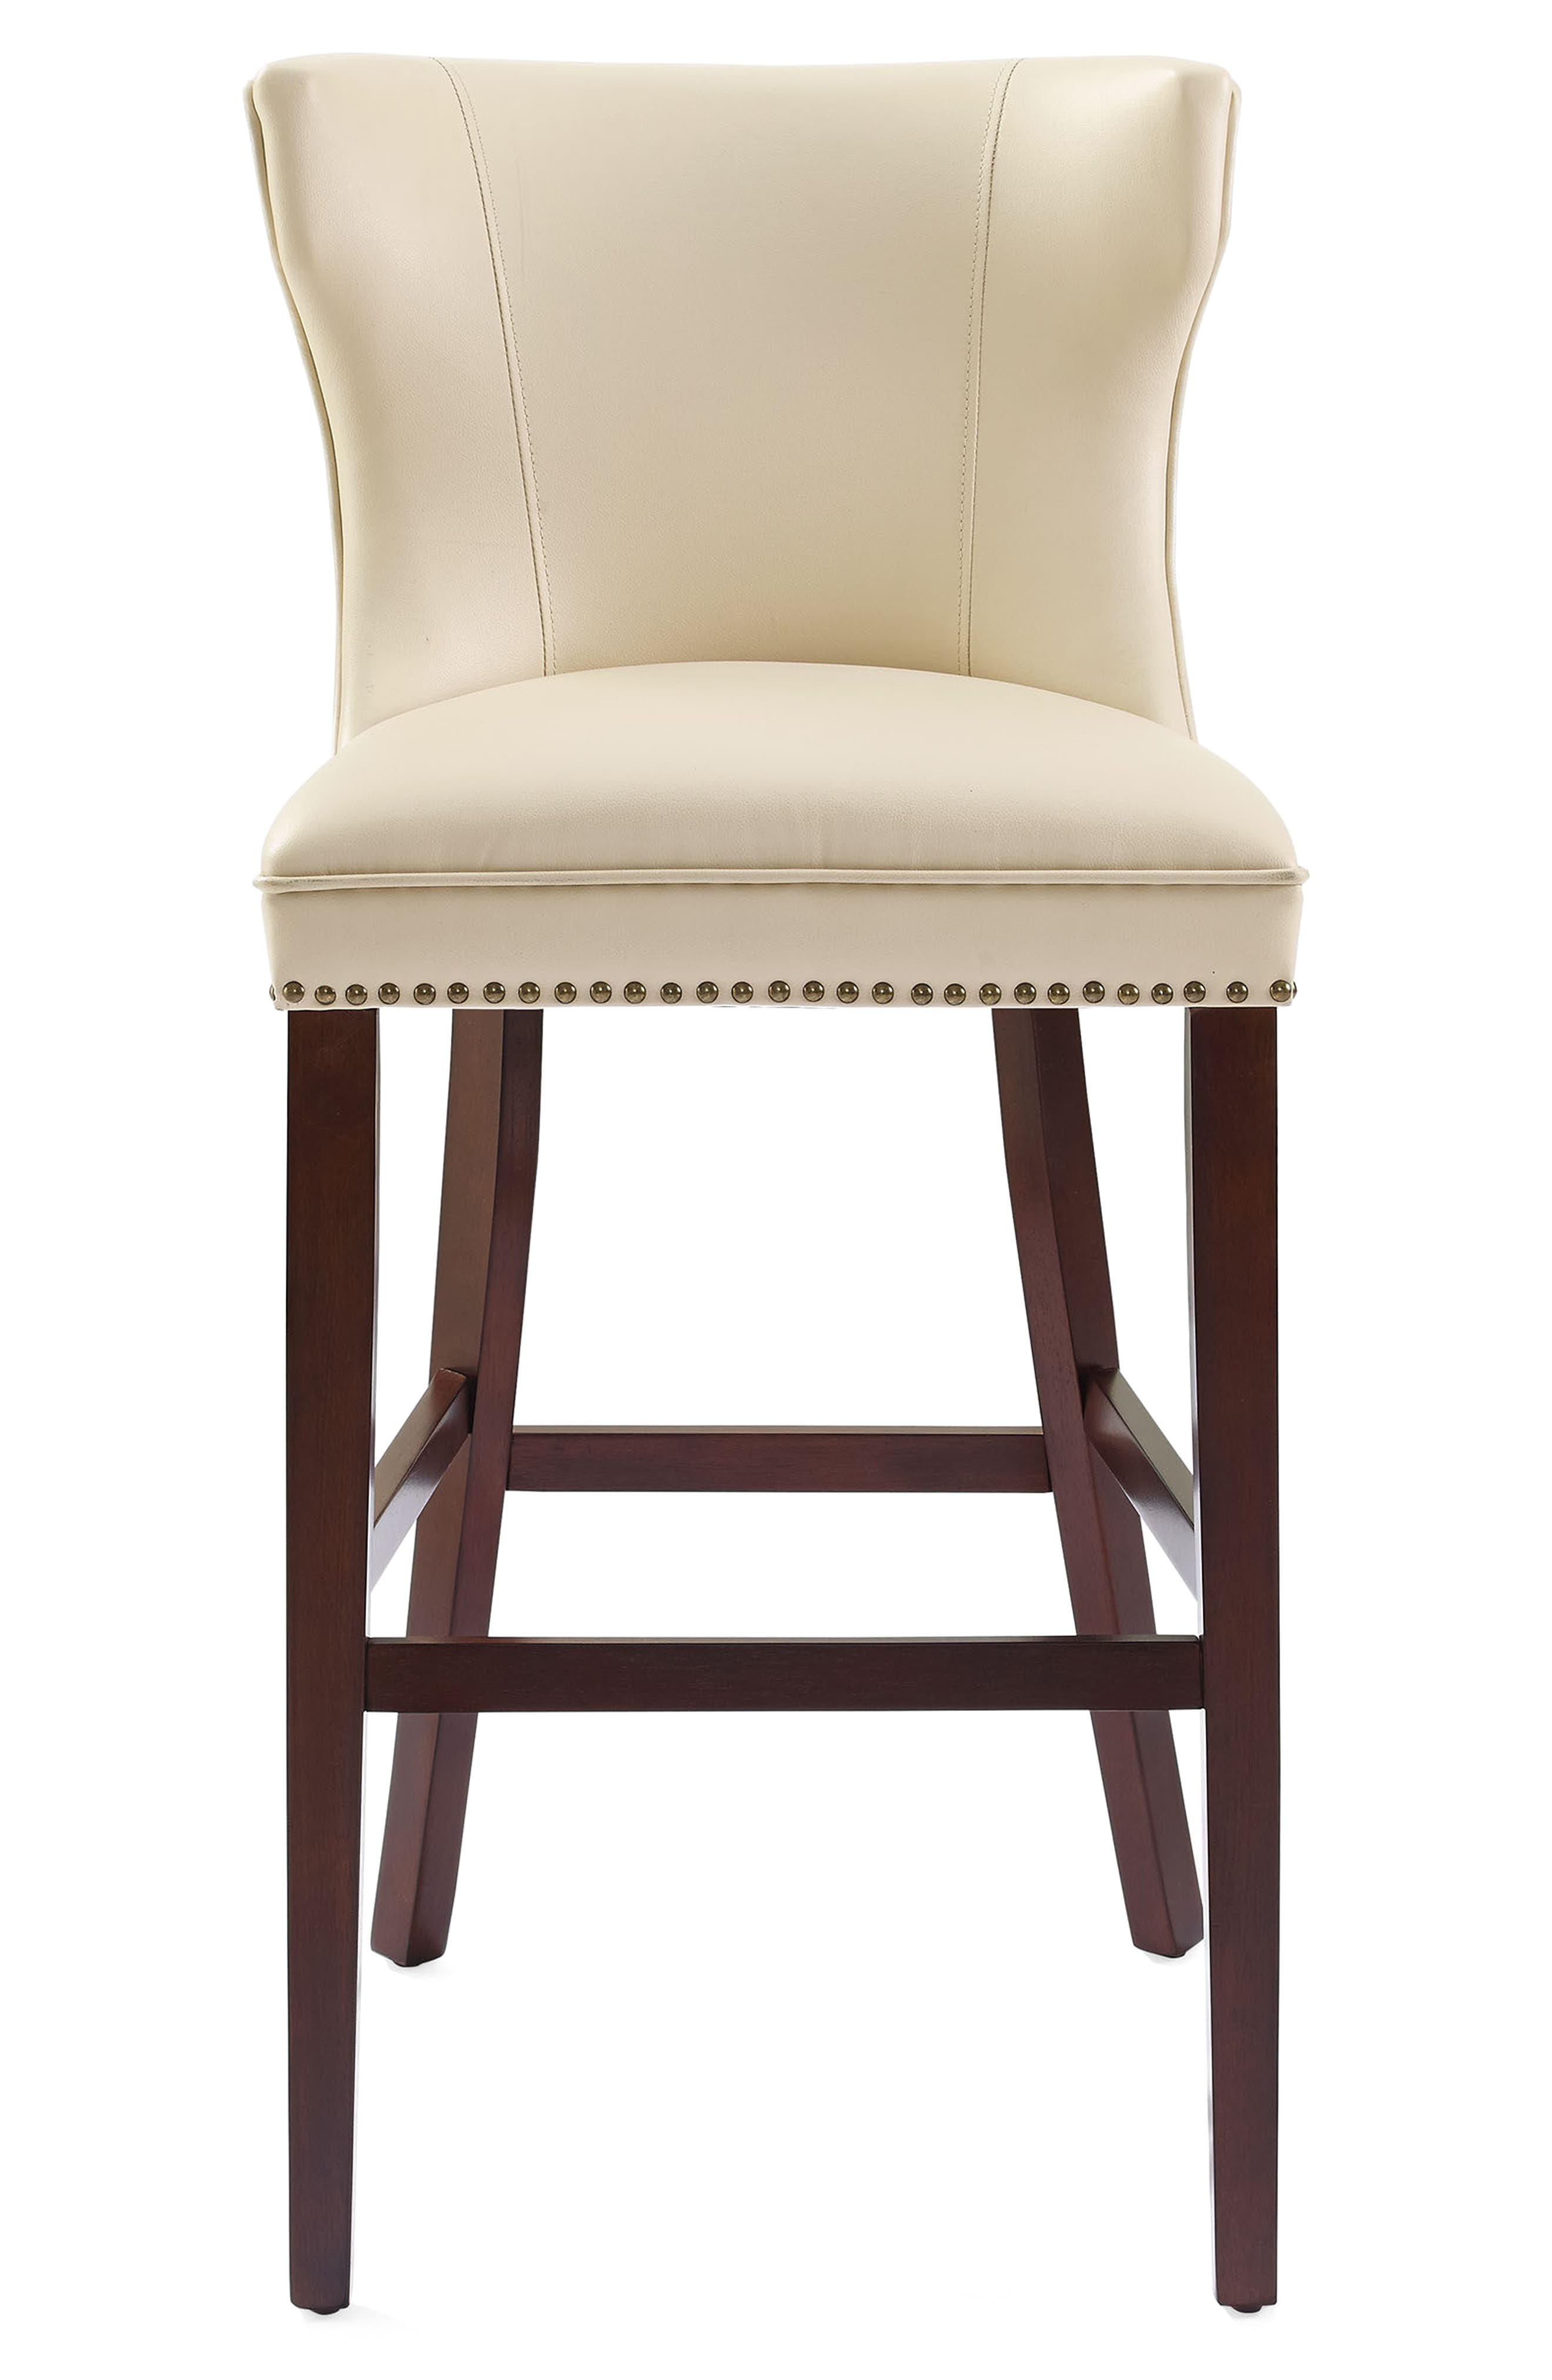 Tilson Bar Stool,                             Main thumbnail 1, color,                             Cream